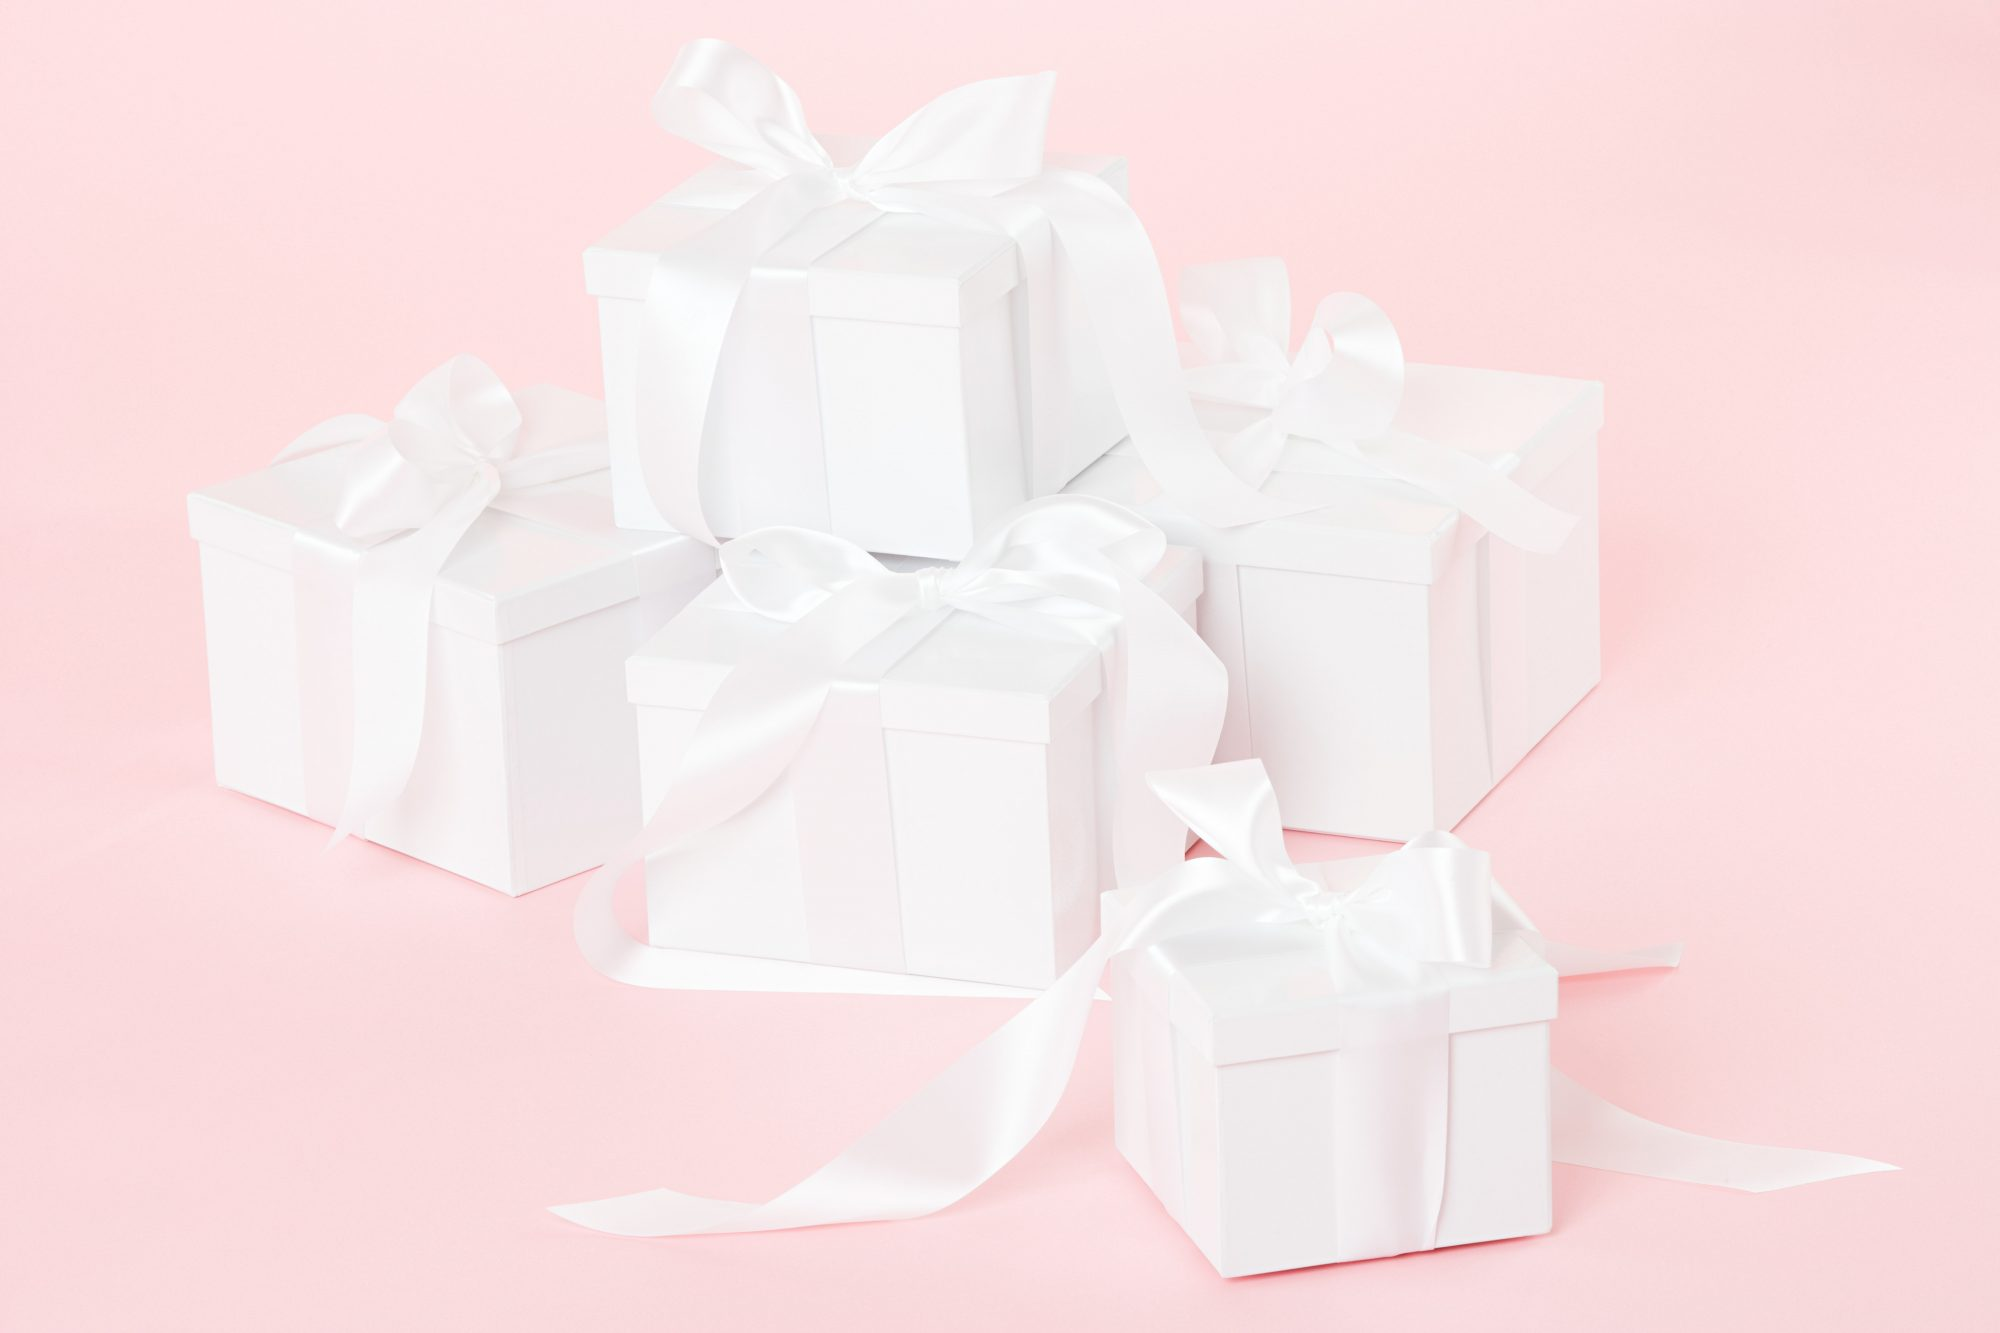 e60d8711a1 The Best Places to Shop for Wedding Gifts | Real Simple